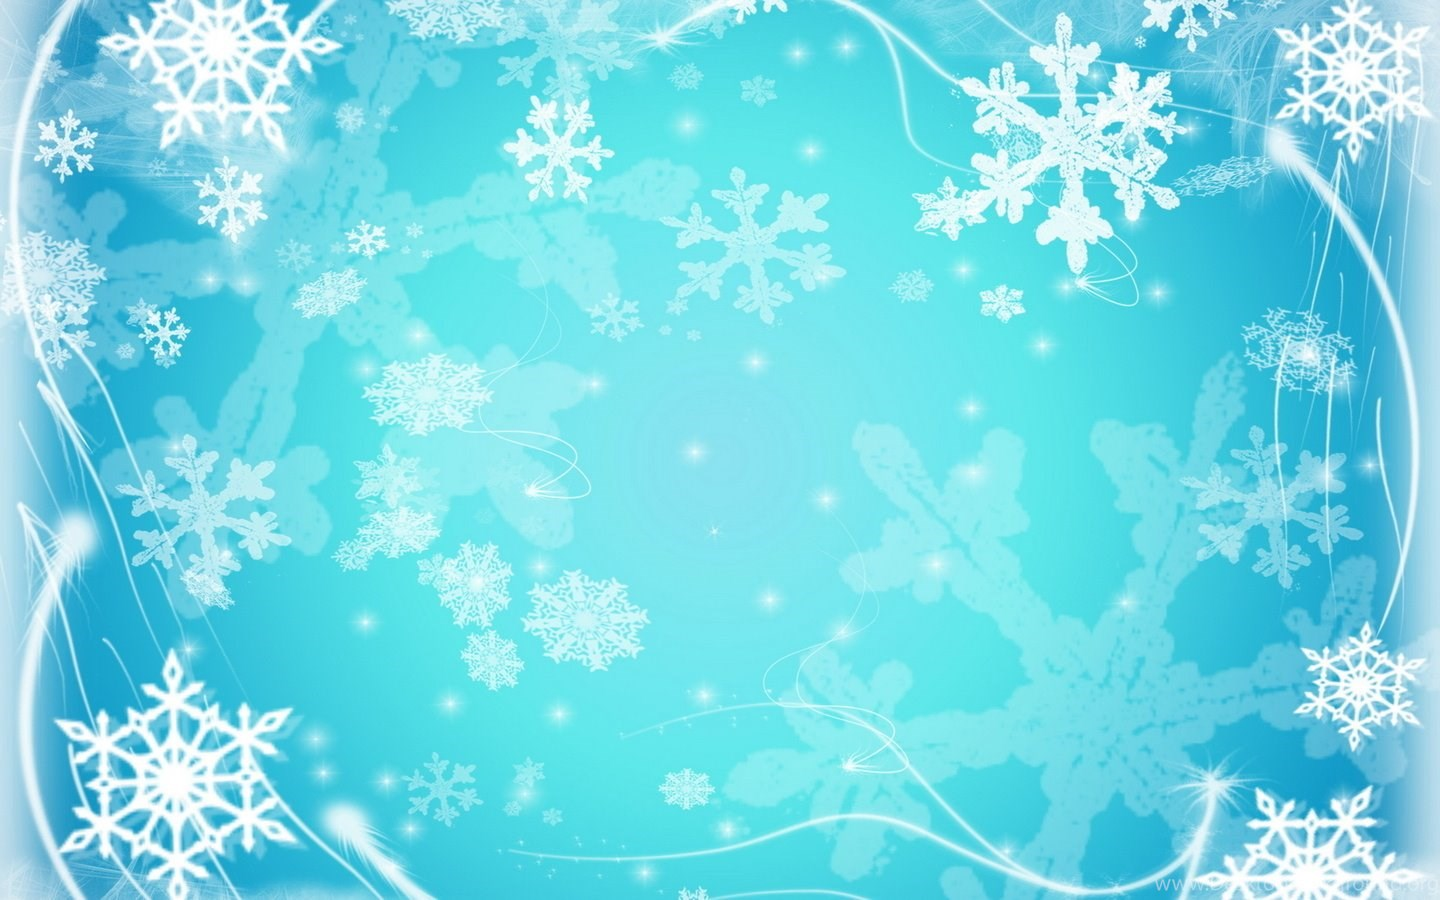 snowflakes, cold, freeze, Frozen ppt background #2748